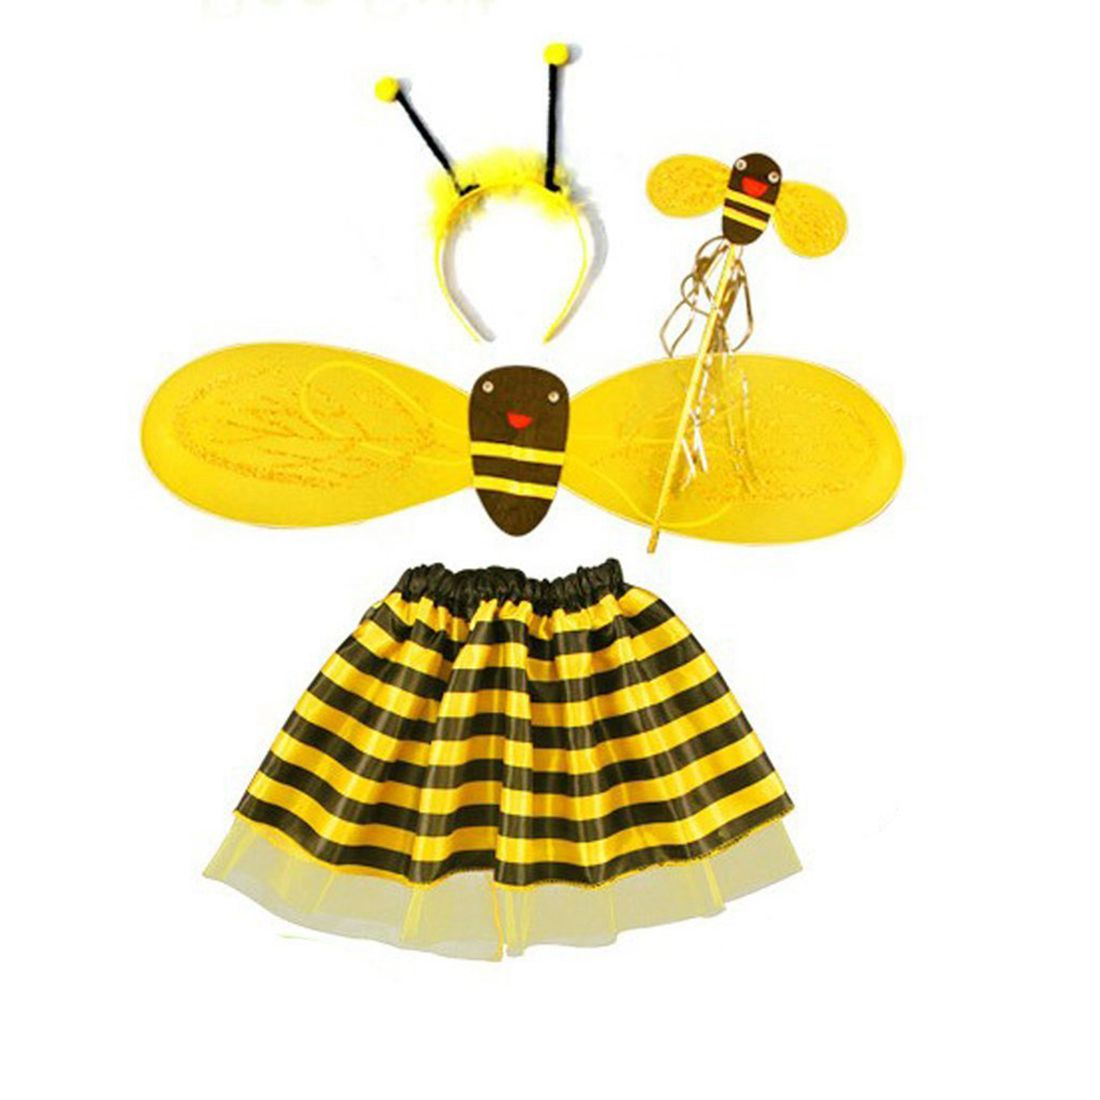 Childrens Black /& Yellow Bumble Bee Garden Insect Fancy Dress Set